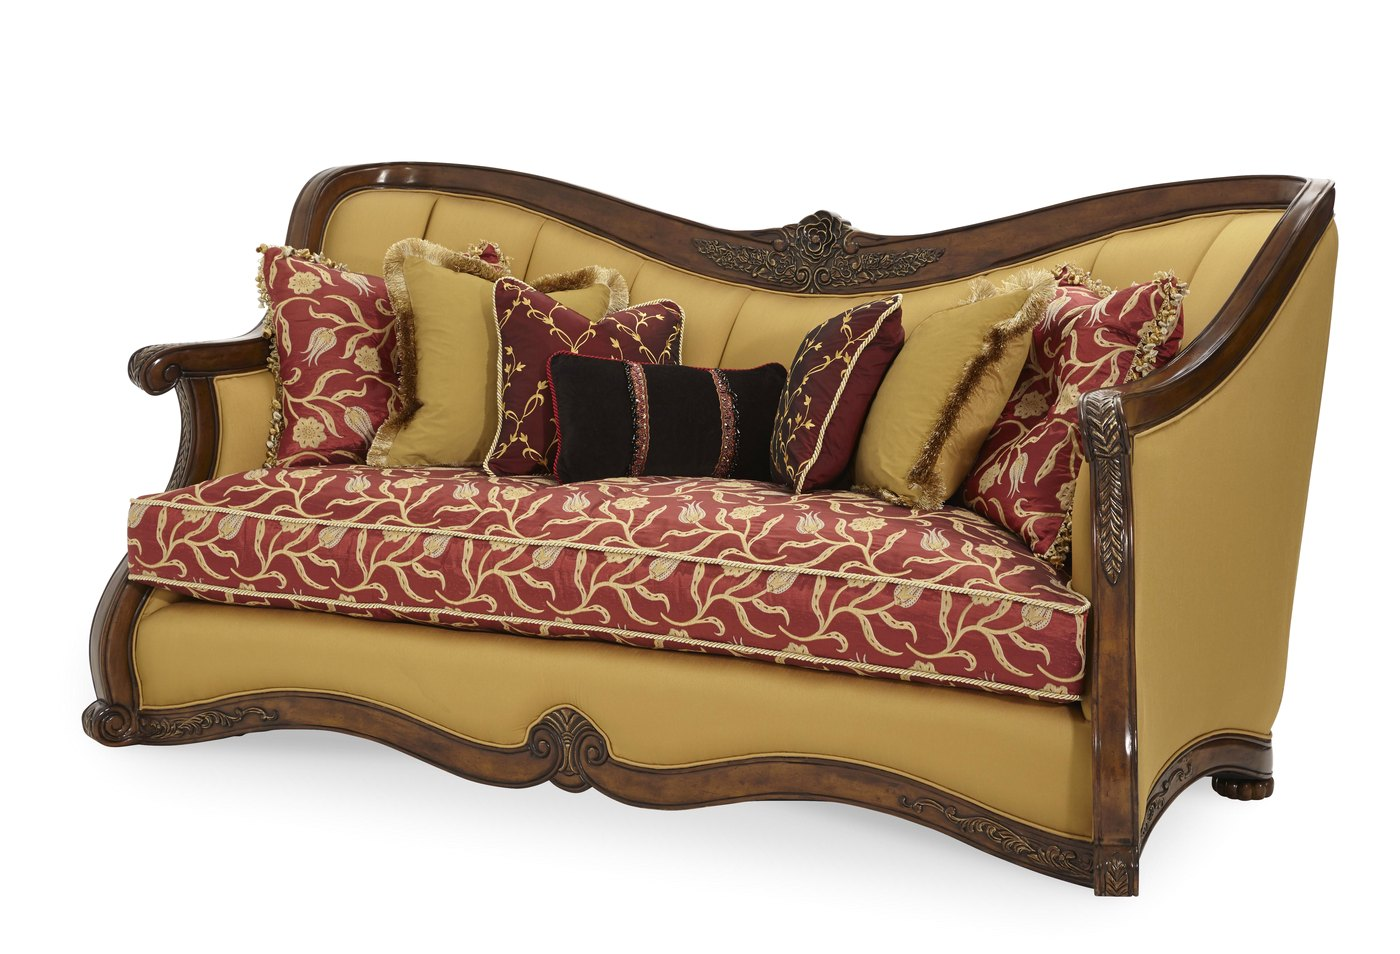 Michael Amini Oppulente Upholstered Solid Wood Frame Sofa